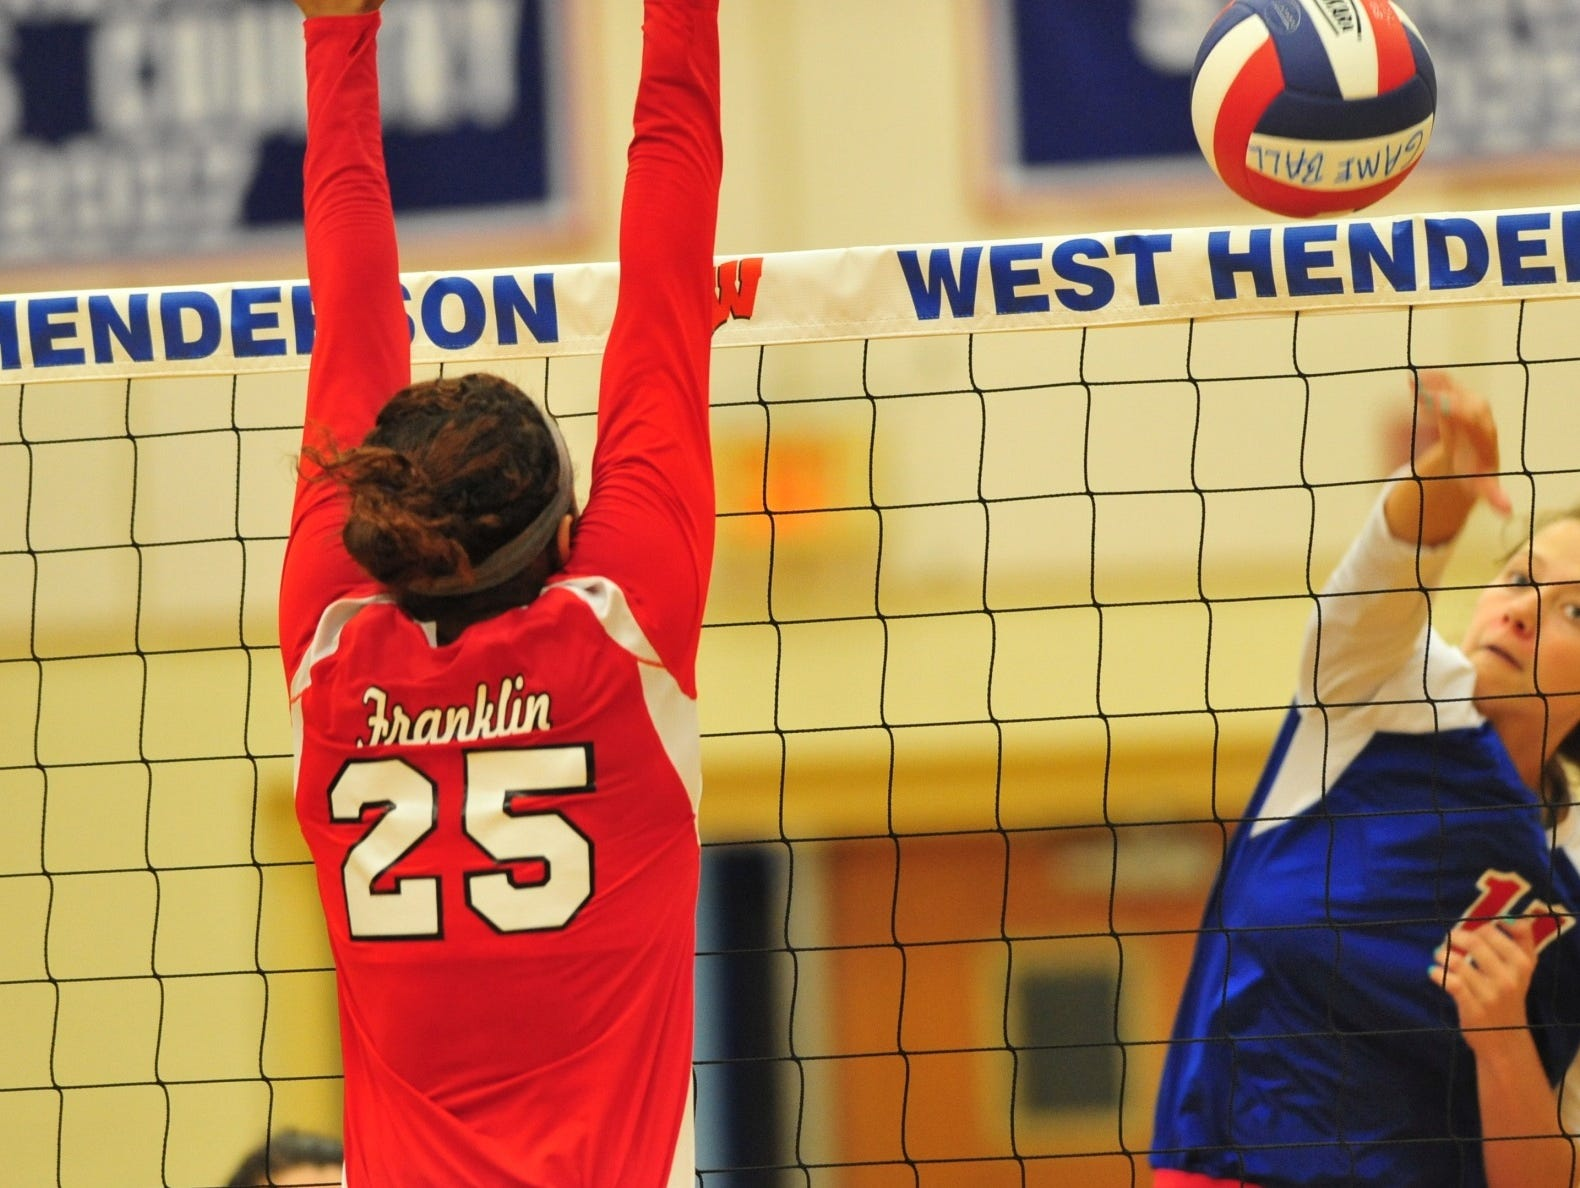 West Henderson will be part of next month's Mountain Bash scrimmage event at the Xcel Sportsplex.